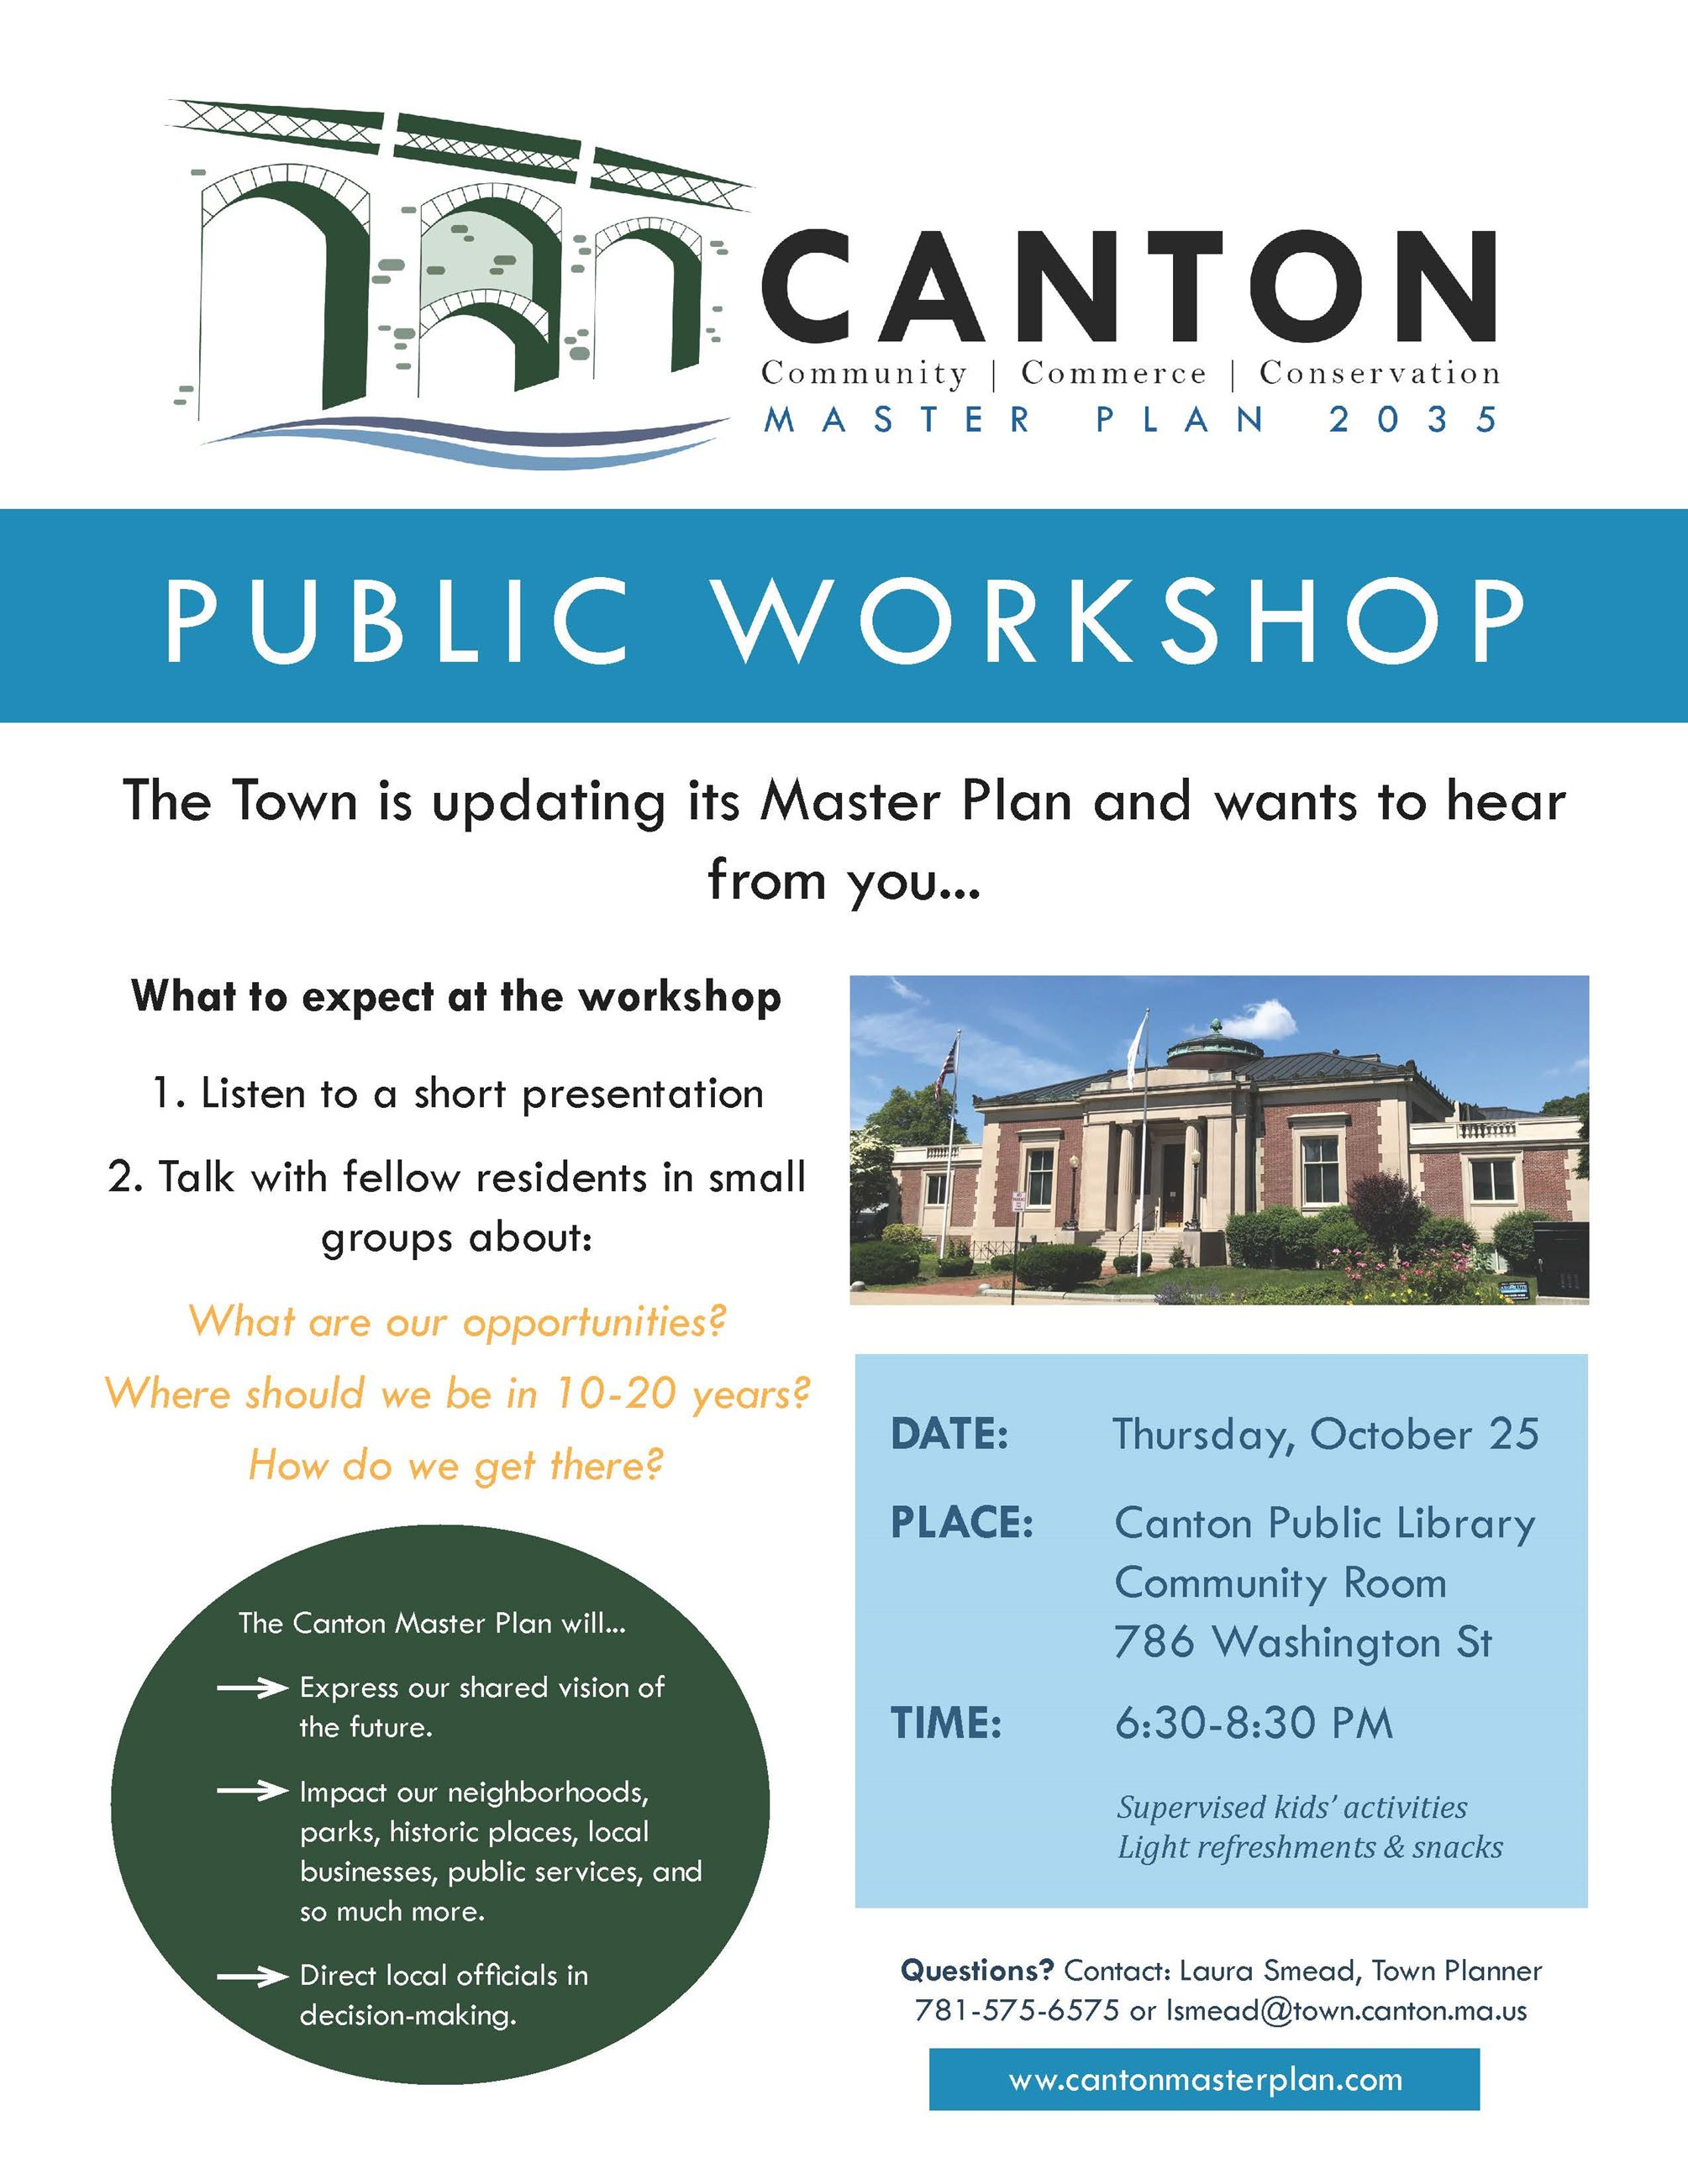 Canton_PW1_Flyer